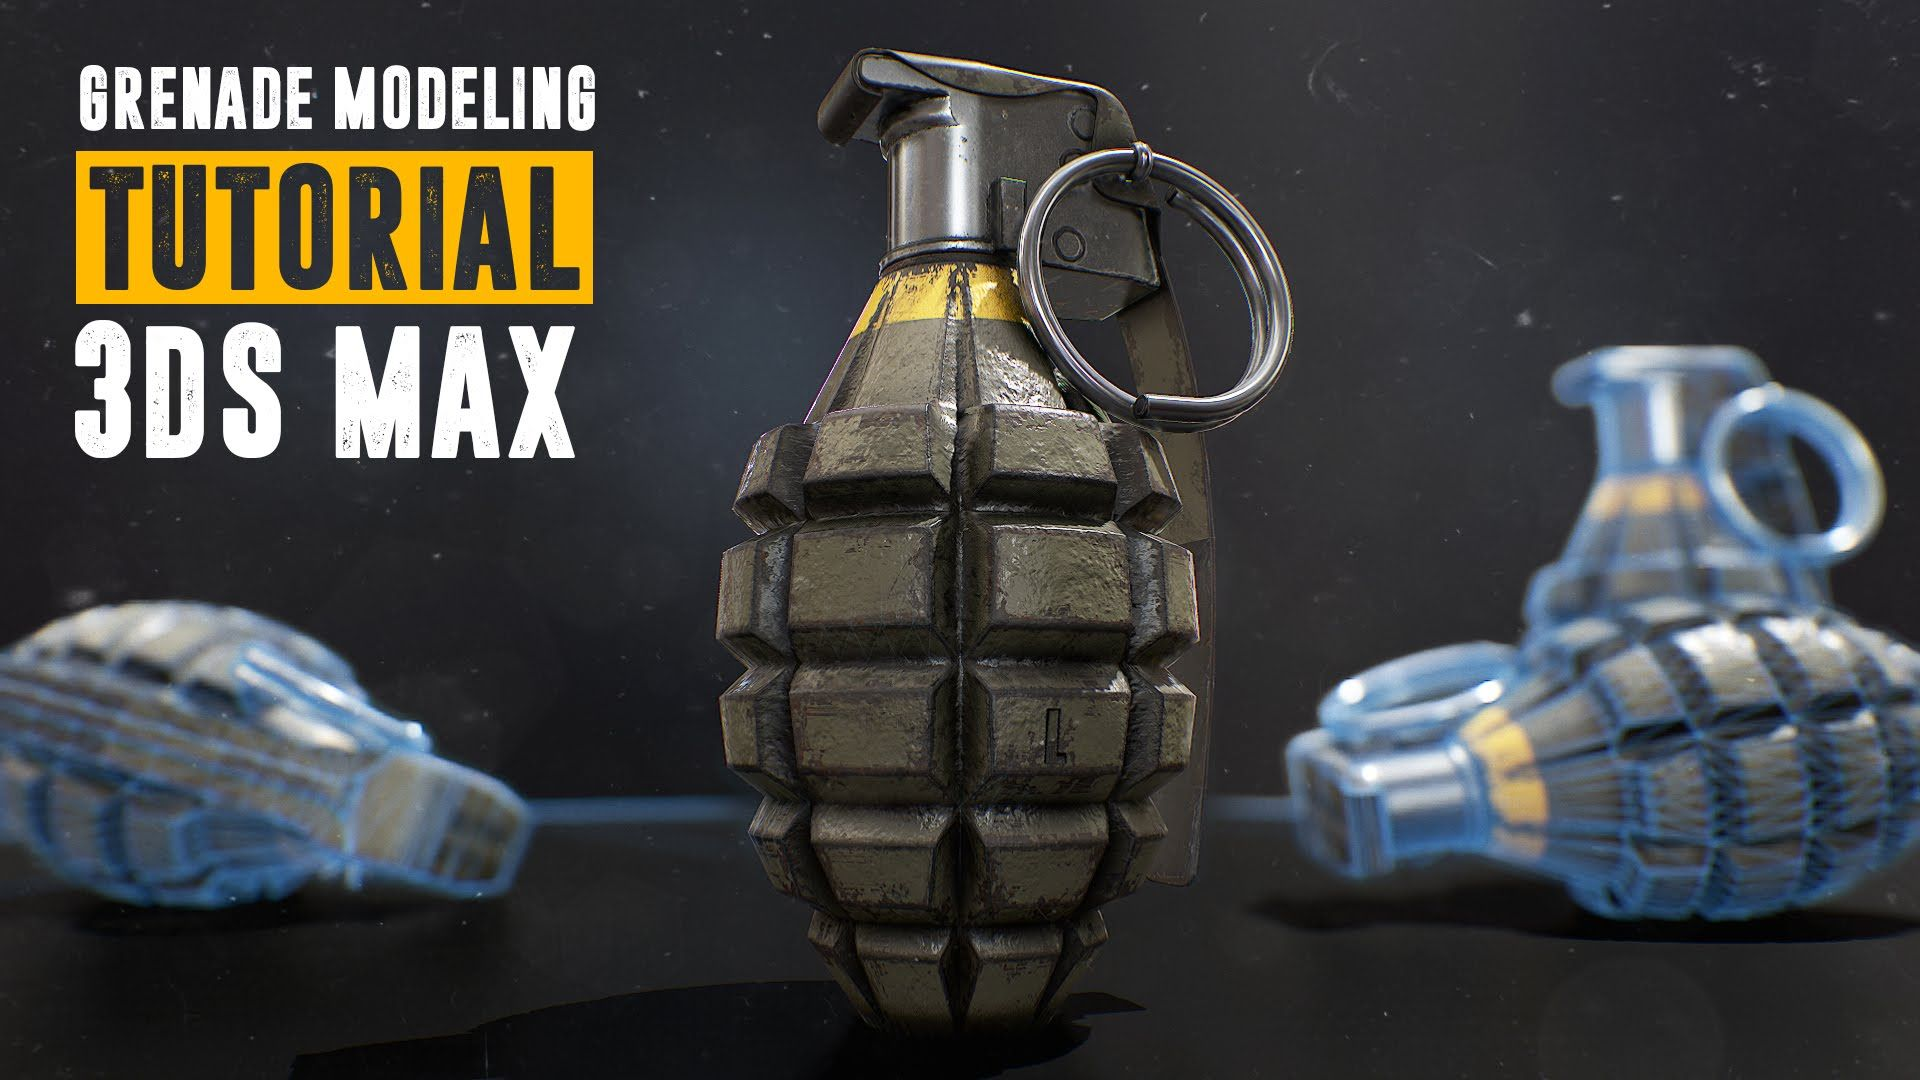 Grenade Tutorial - Part 1 - Modeling & UV Layout - 3Ds Max 2016✿❤Thank❤You✿I❤❤❤You❤✿